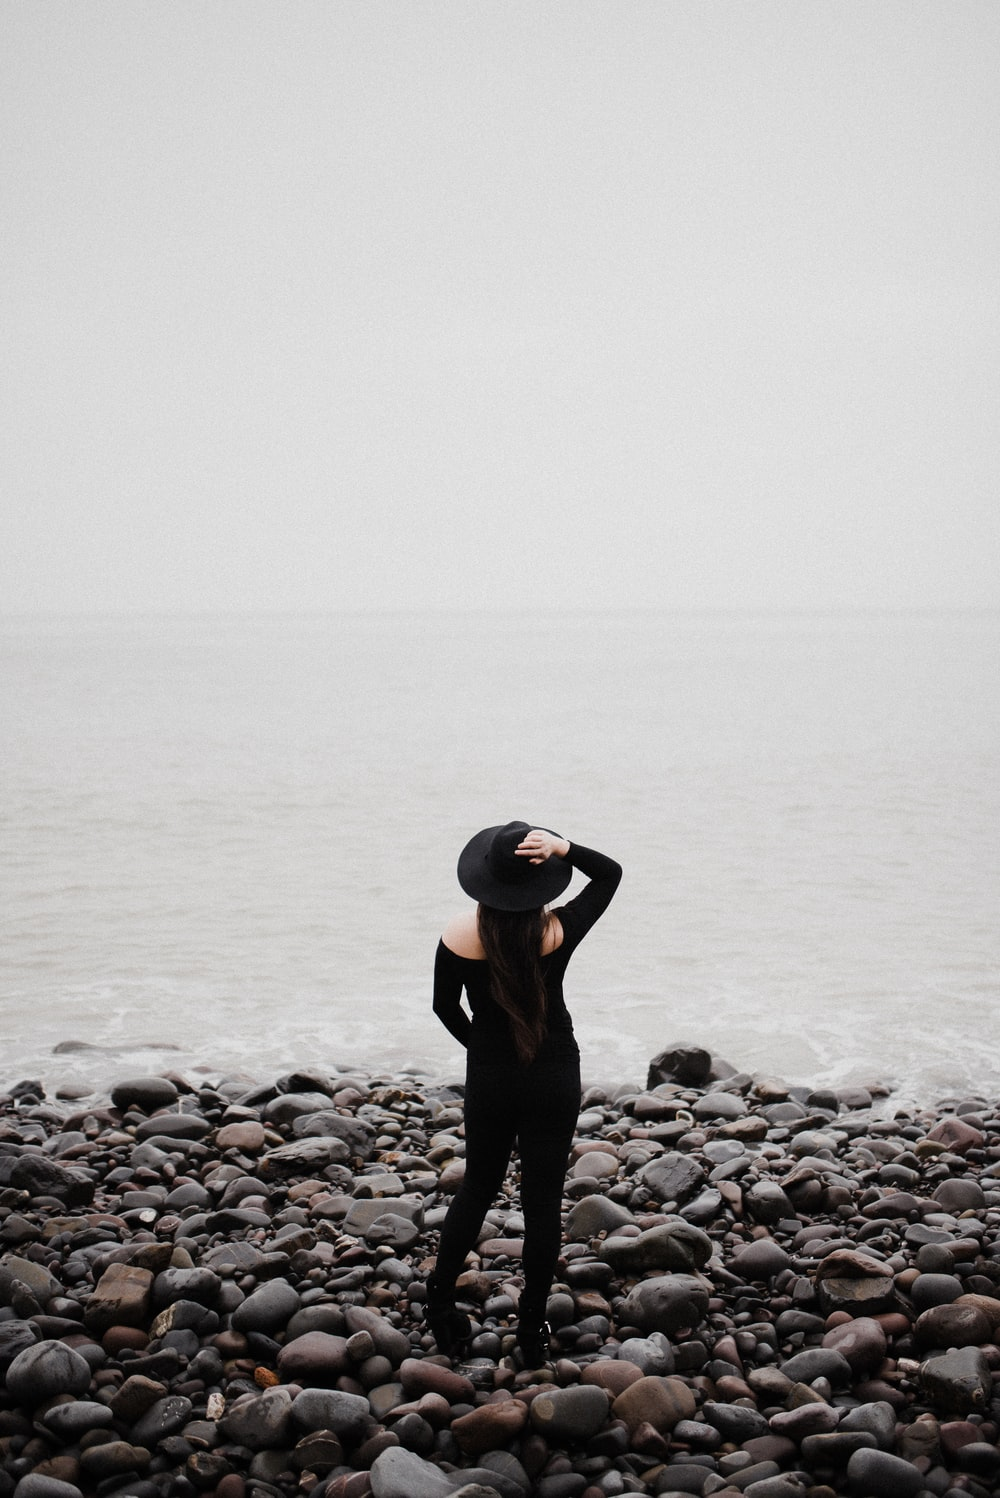 woman in black long sleeve shirt and black pants standing on rocky shore during daytime